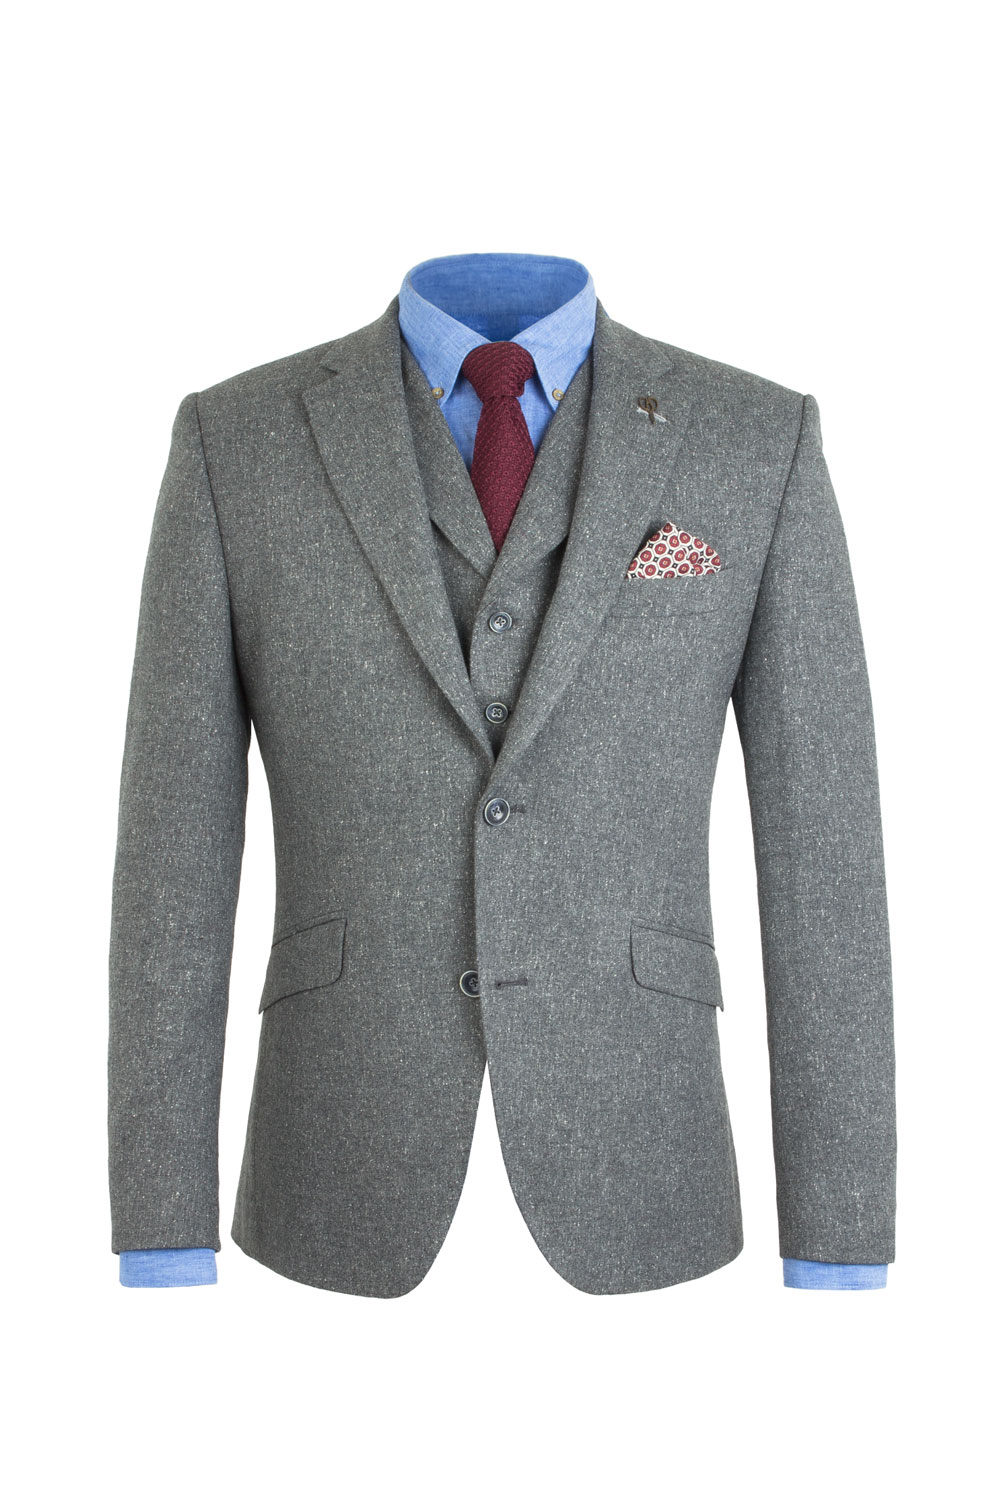 Grey Donegal Tweed 3 Piece Suit Tom Murphy S Formal And Menswear